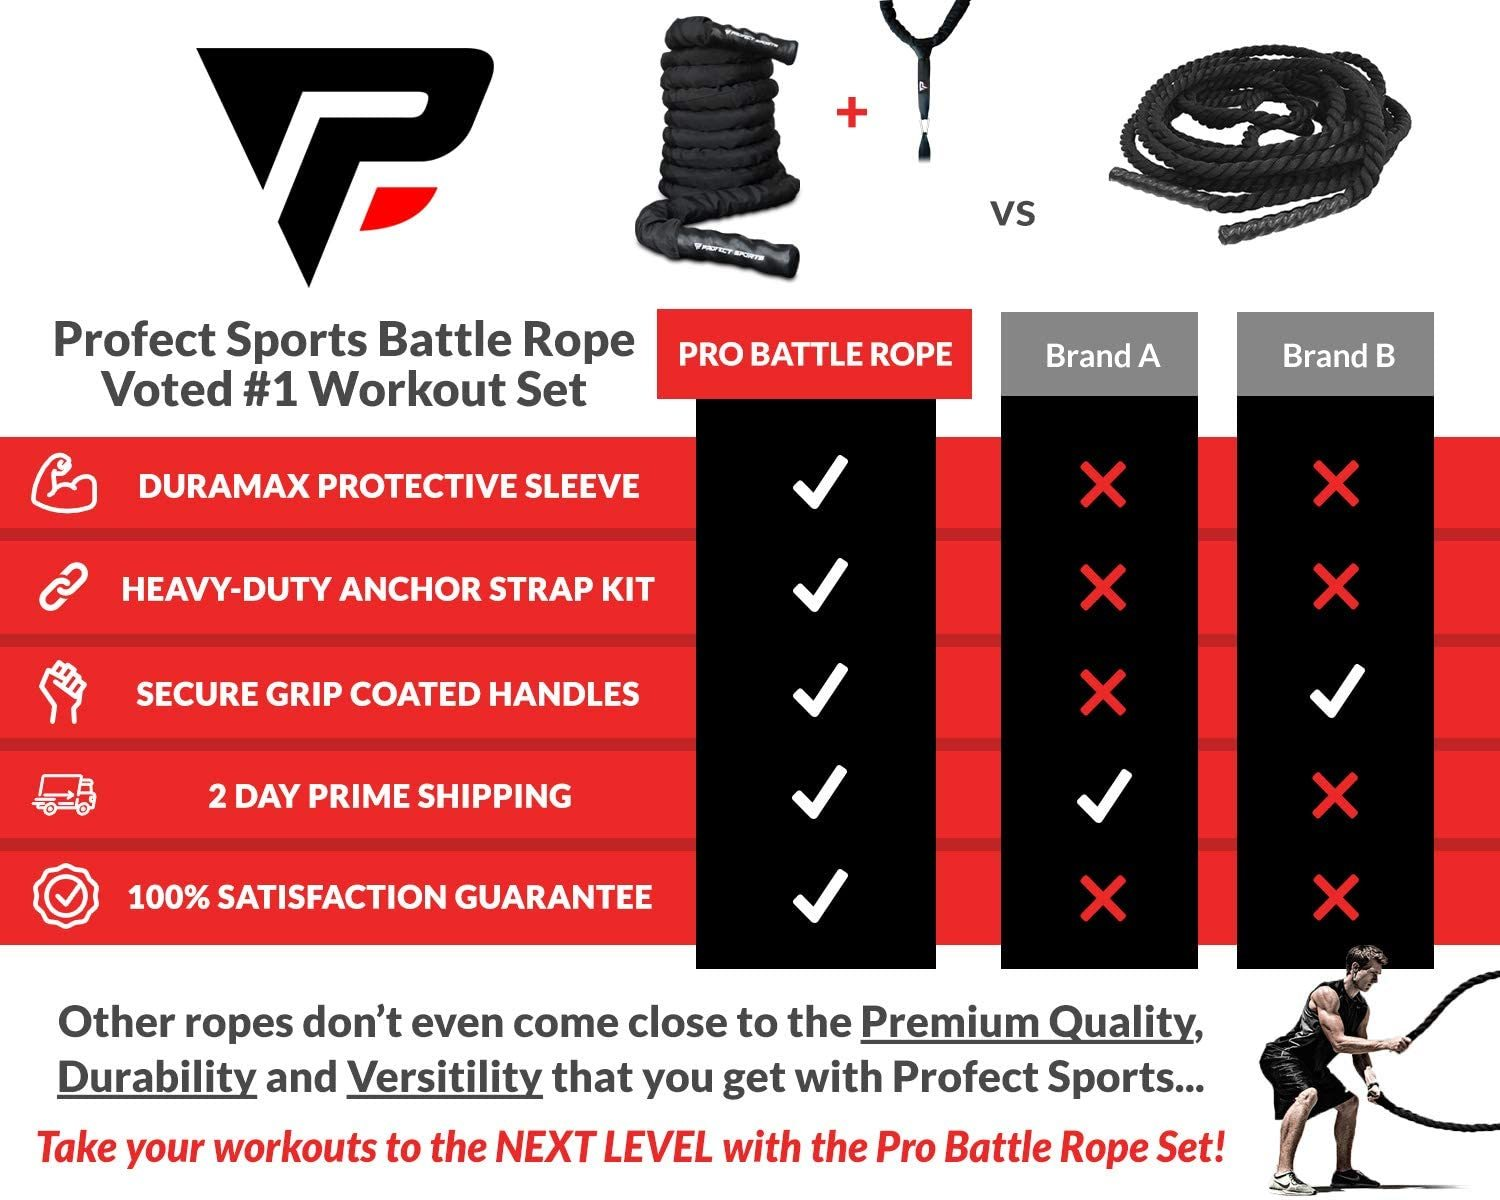 Battle Ropes with Anchor Strap Kit - Upgraded Durable Protective Sleeve - 100% Poly Dacron Heavy Battle Rope for Strength Training, Cardio Workout, Crossfit, Fitness Exercise Rope